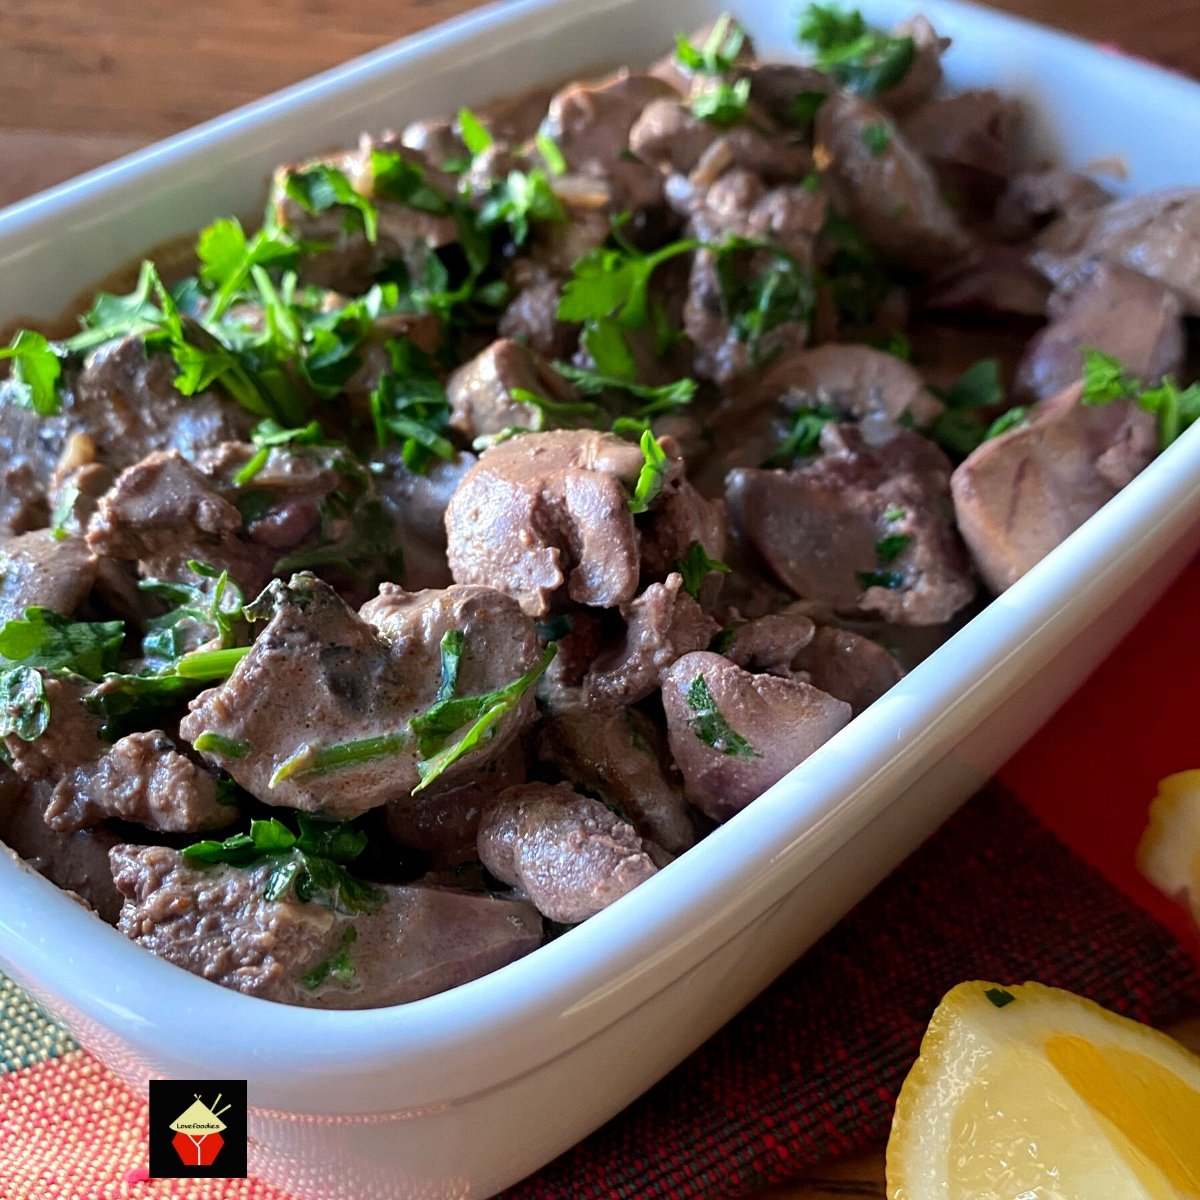 Creamy Garlic Chicken Livers and Mushrooms. Pan-fried tender chicken livers and mushrooms in a creamy garlic sauce is a great brunch or supper dish. Delicious served on hot buttered toast. Very quick and easy recipe